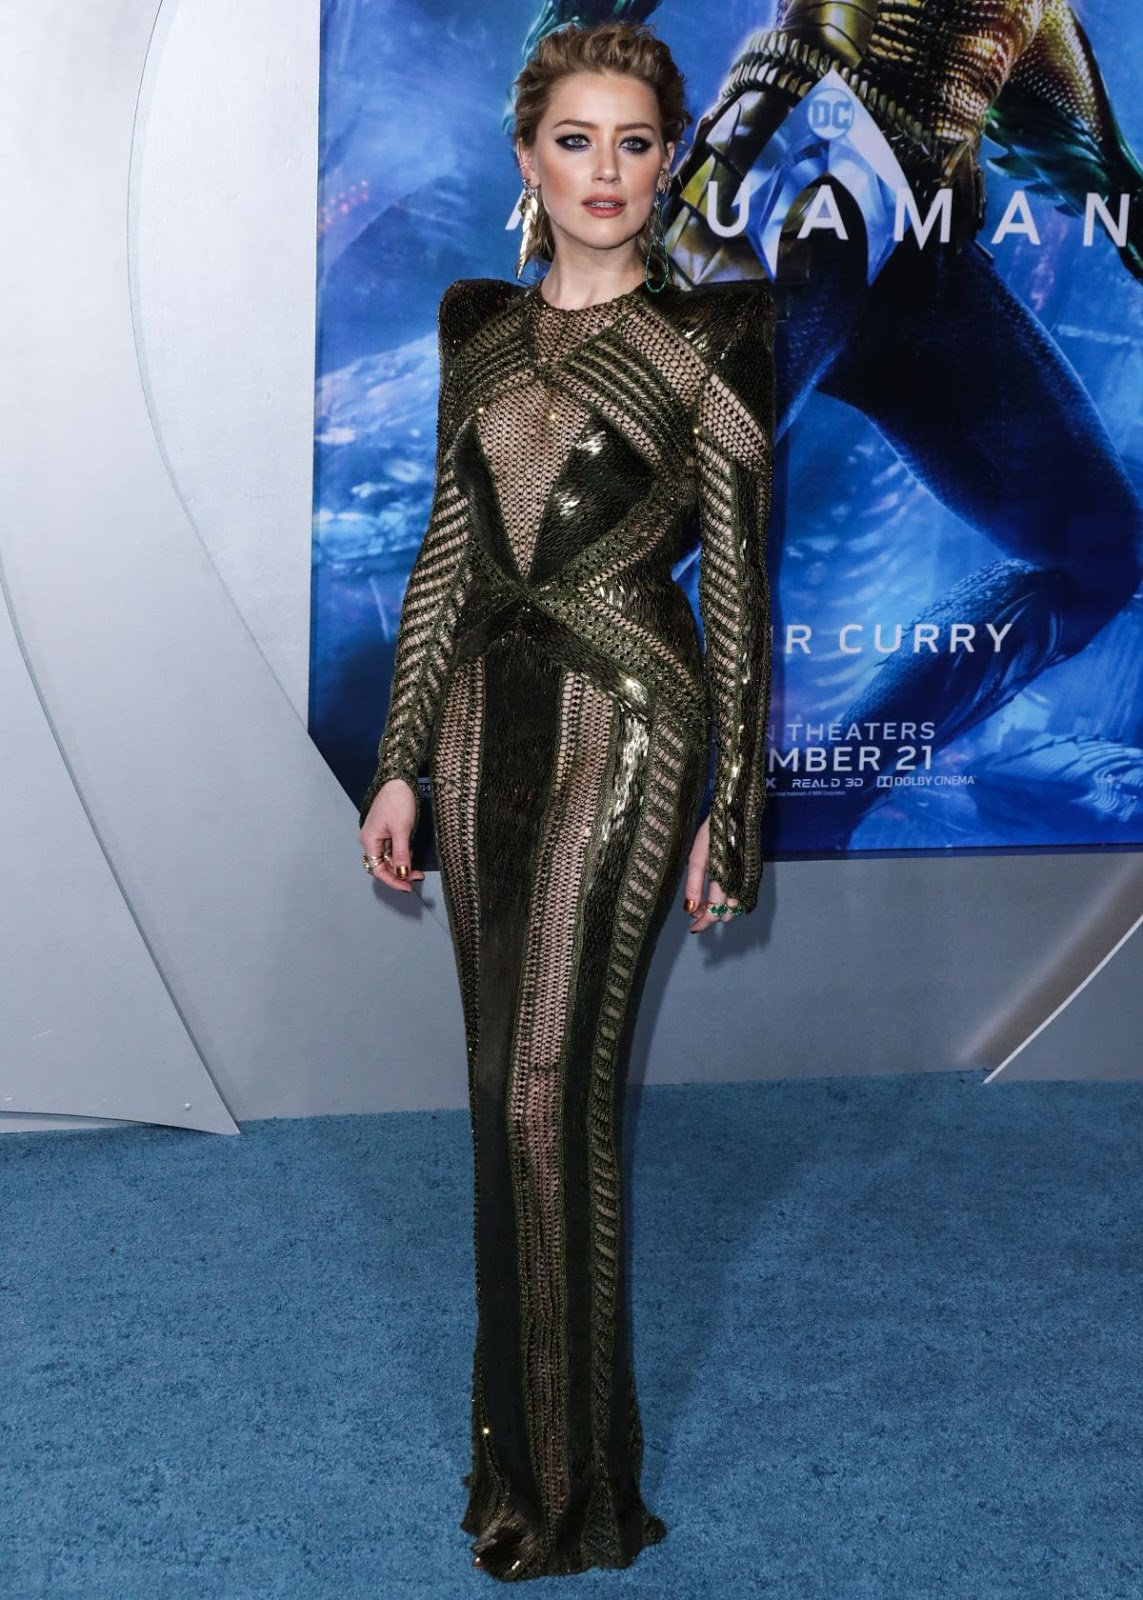 Amber Heard Aquaman Premiere in LA